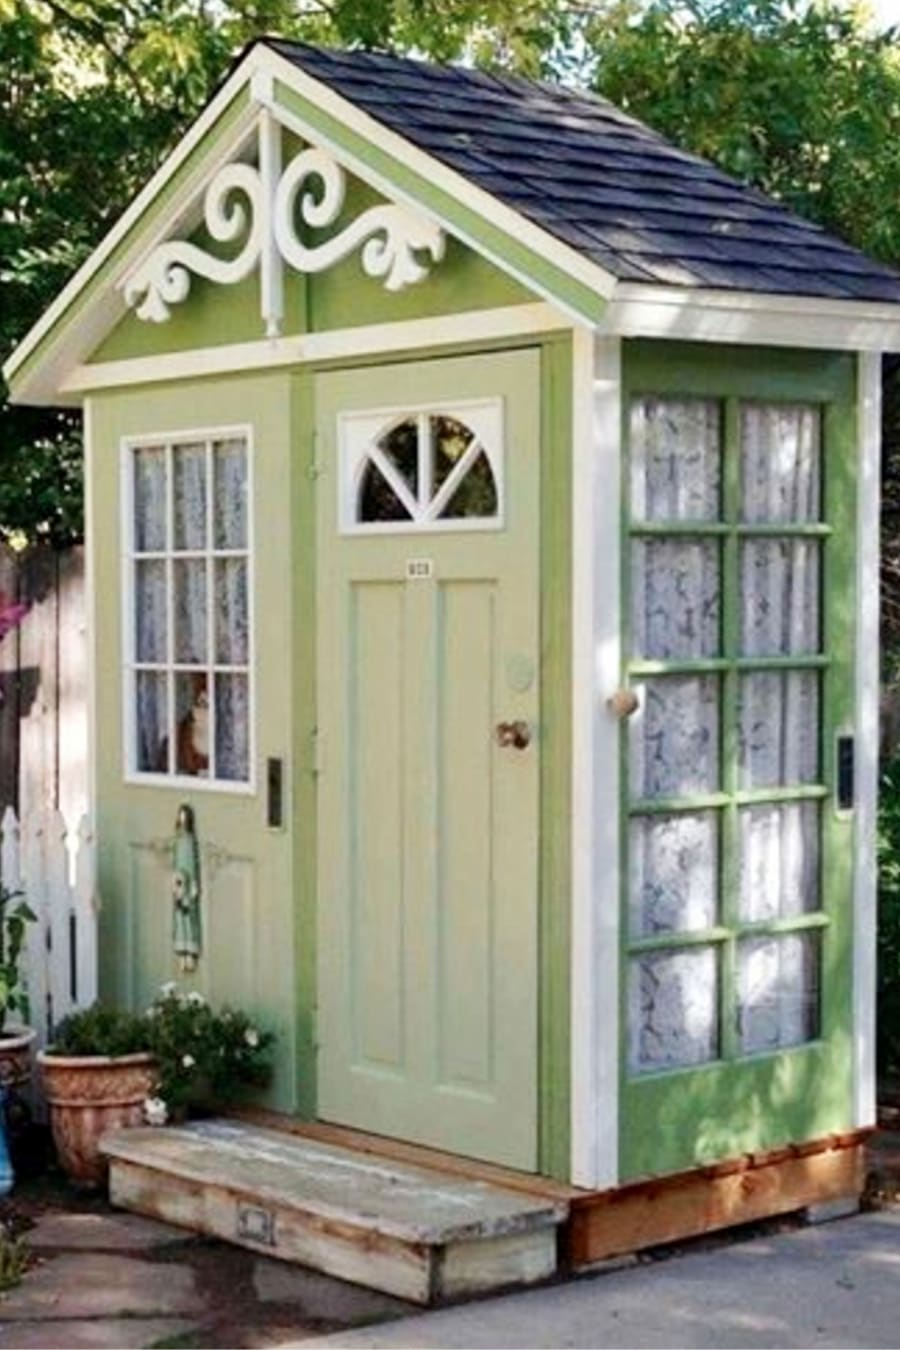 She Shed Ideas We LOVE - This She Shed Garden Shed Is made From Old Doors - What a Clever DIY Repurposed Upclycled Outdoor Building Idea!